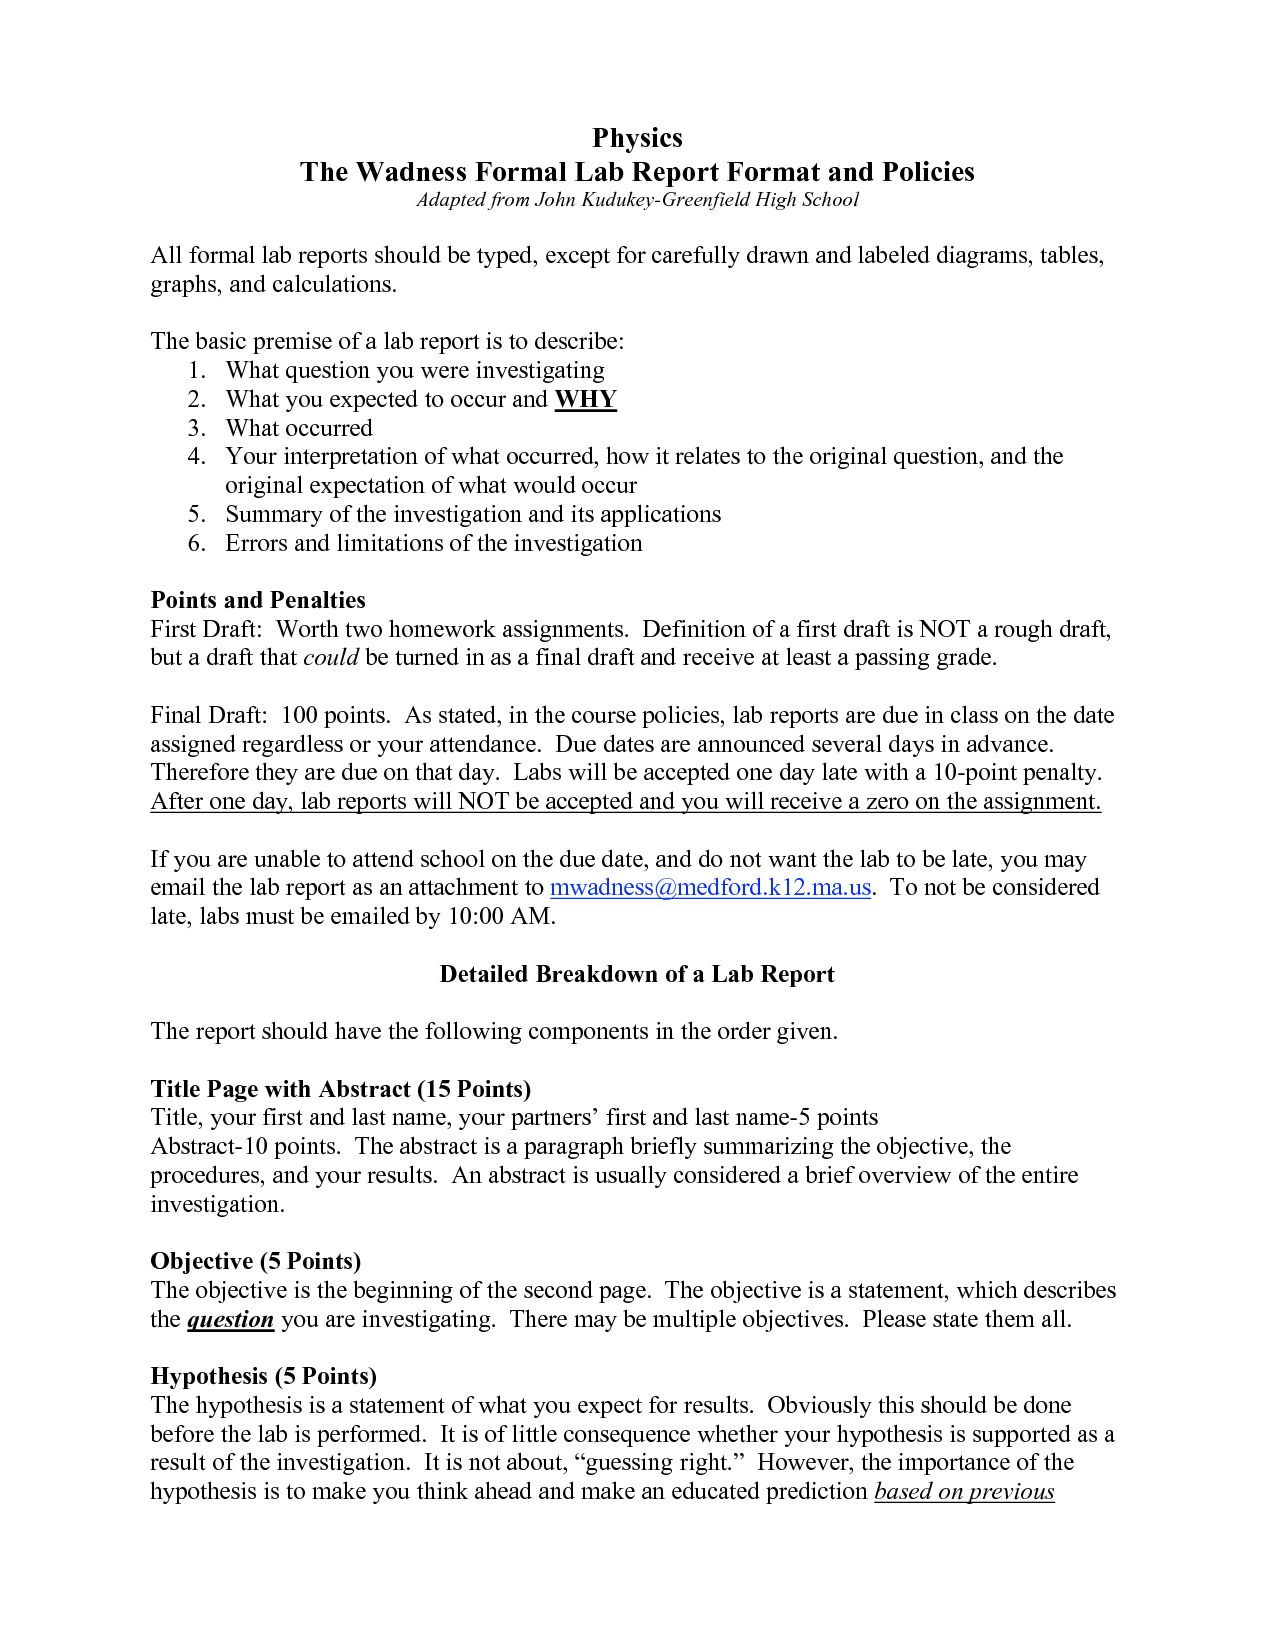 Formal Lab Report Template Physics Biological Science With